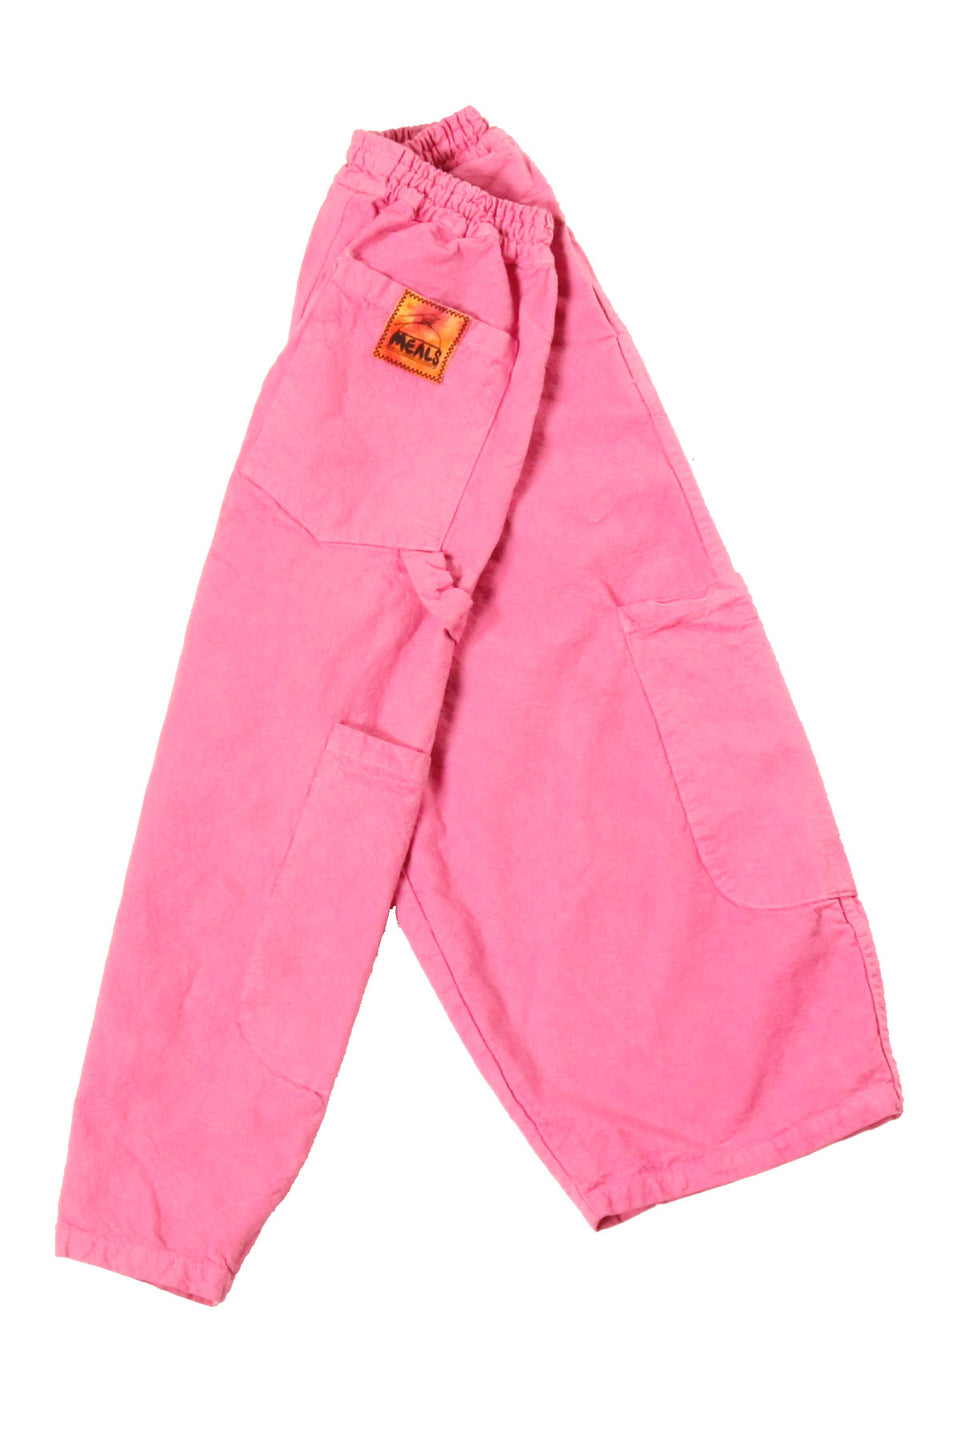 Donut Box Chef Pant